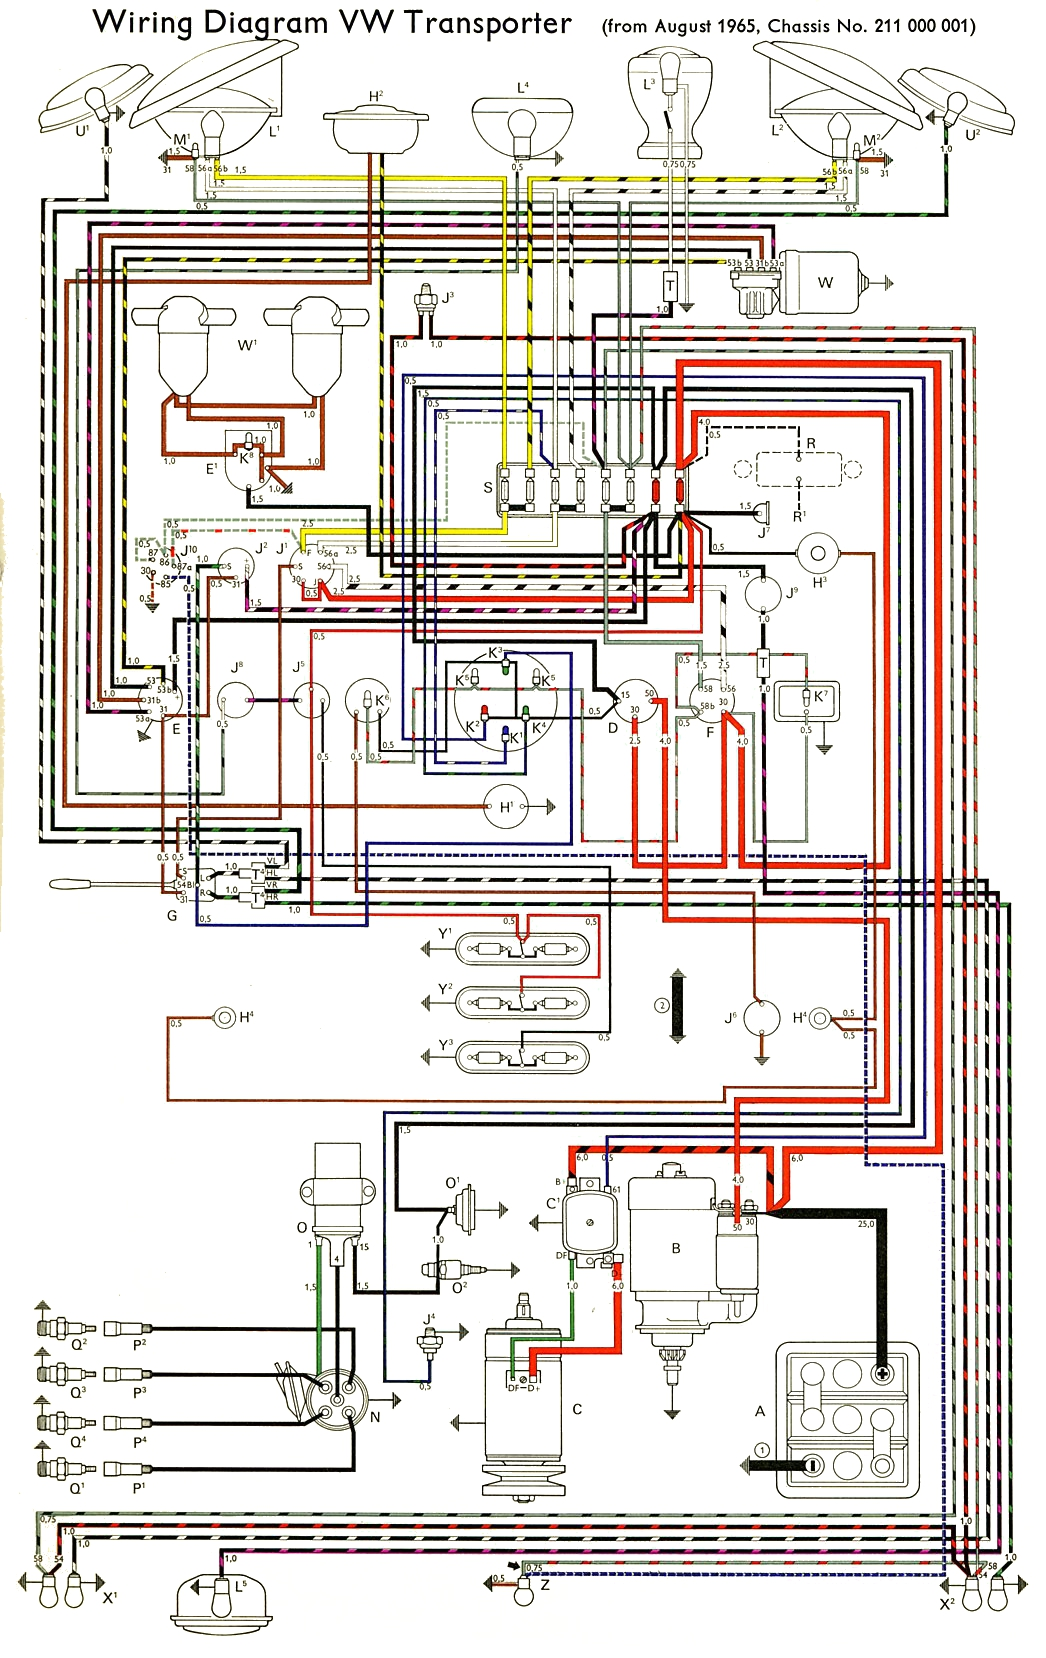 bus_66 thesamba com type 2 wiring diagrams vw t4 wiring diagram pdf at gsmx.co